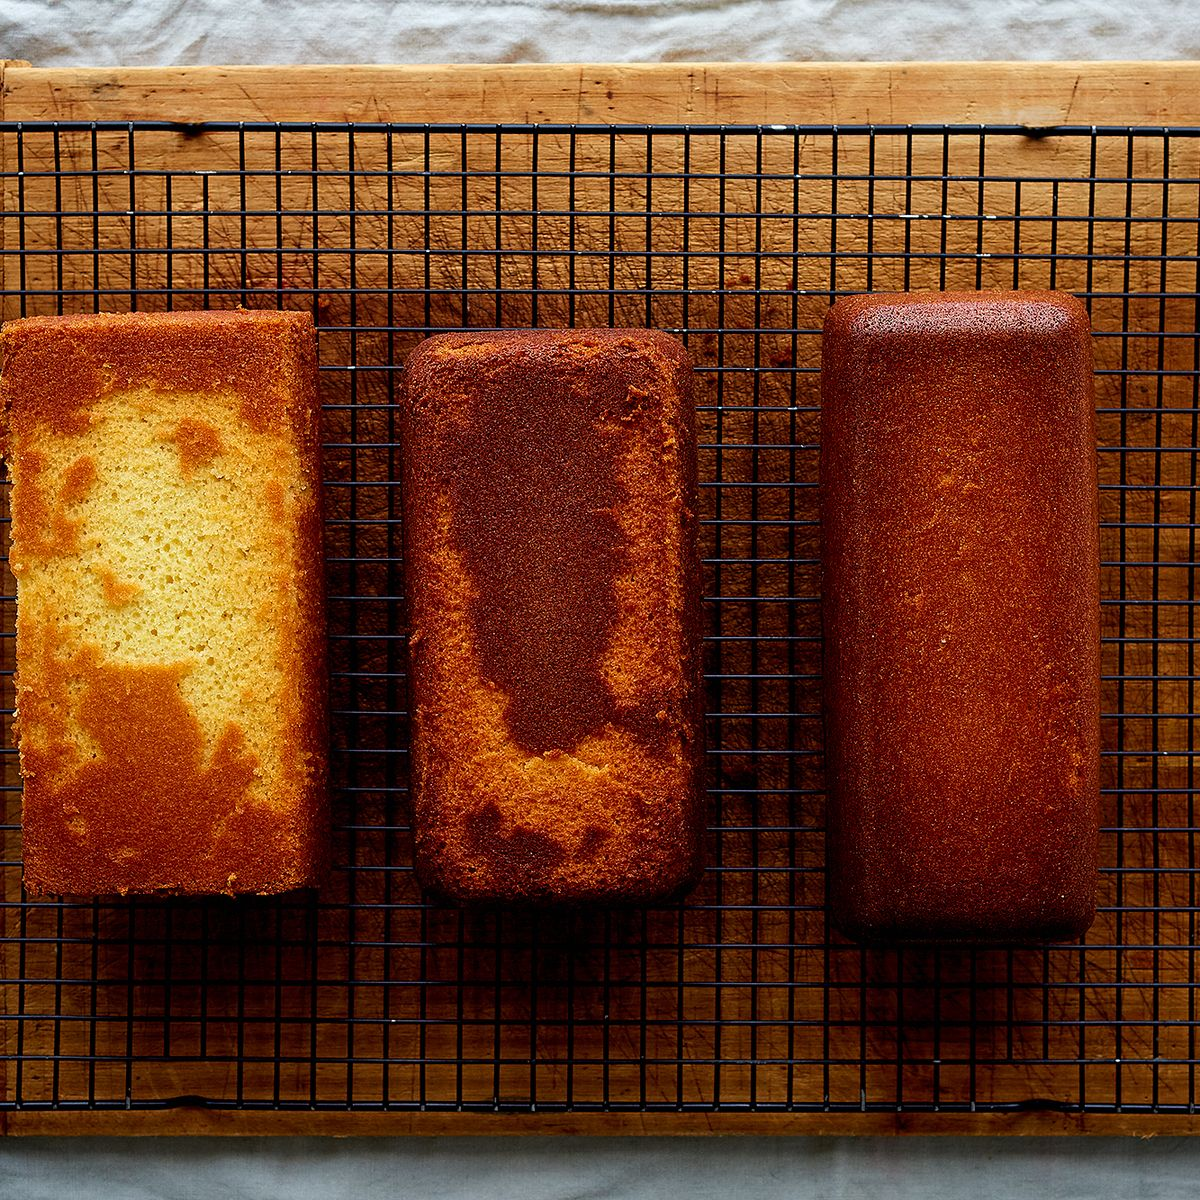 How The Material Of Your Cake Pan Affects Baking